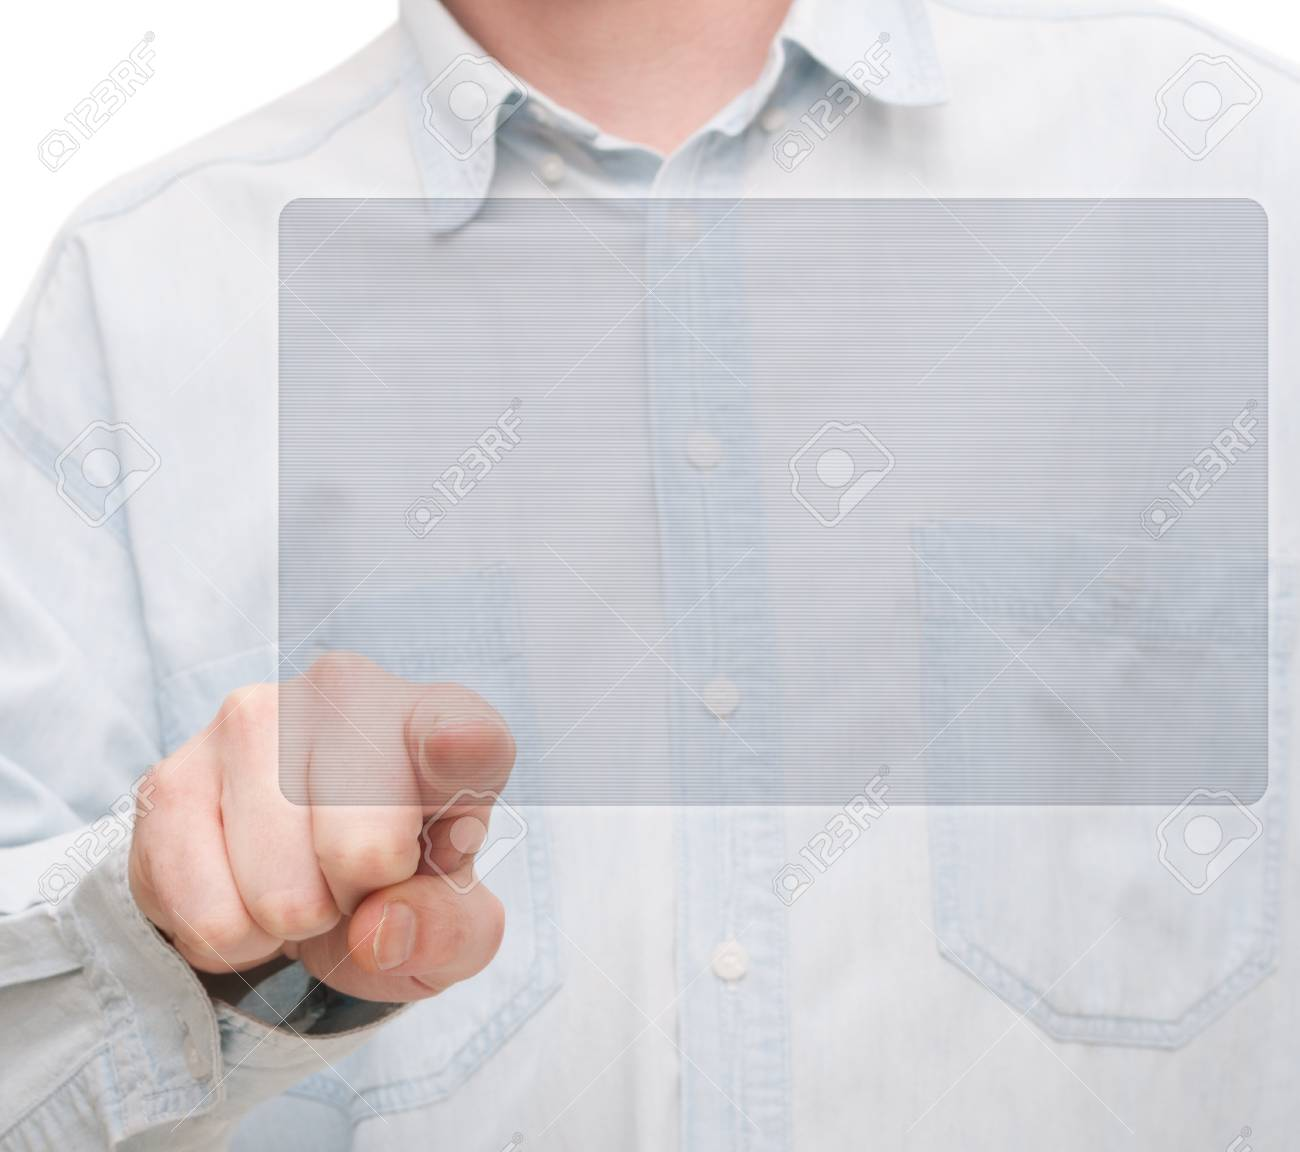 Hand Pushing Touchscreen - Place for Copy Stock Photo - 13927063